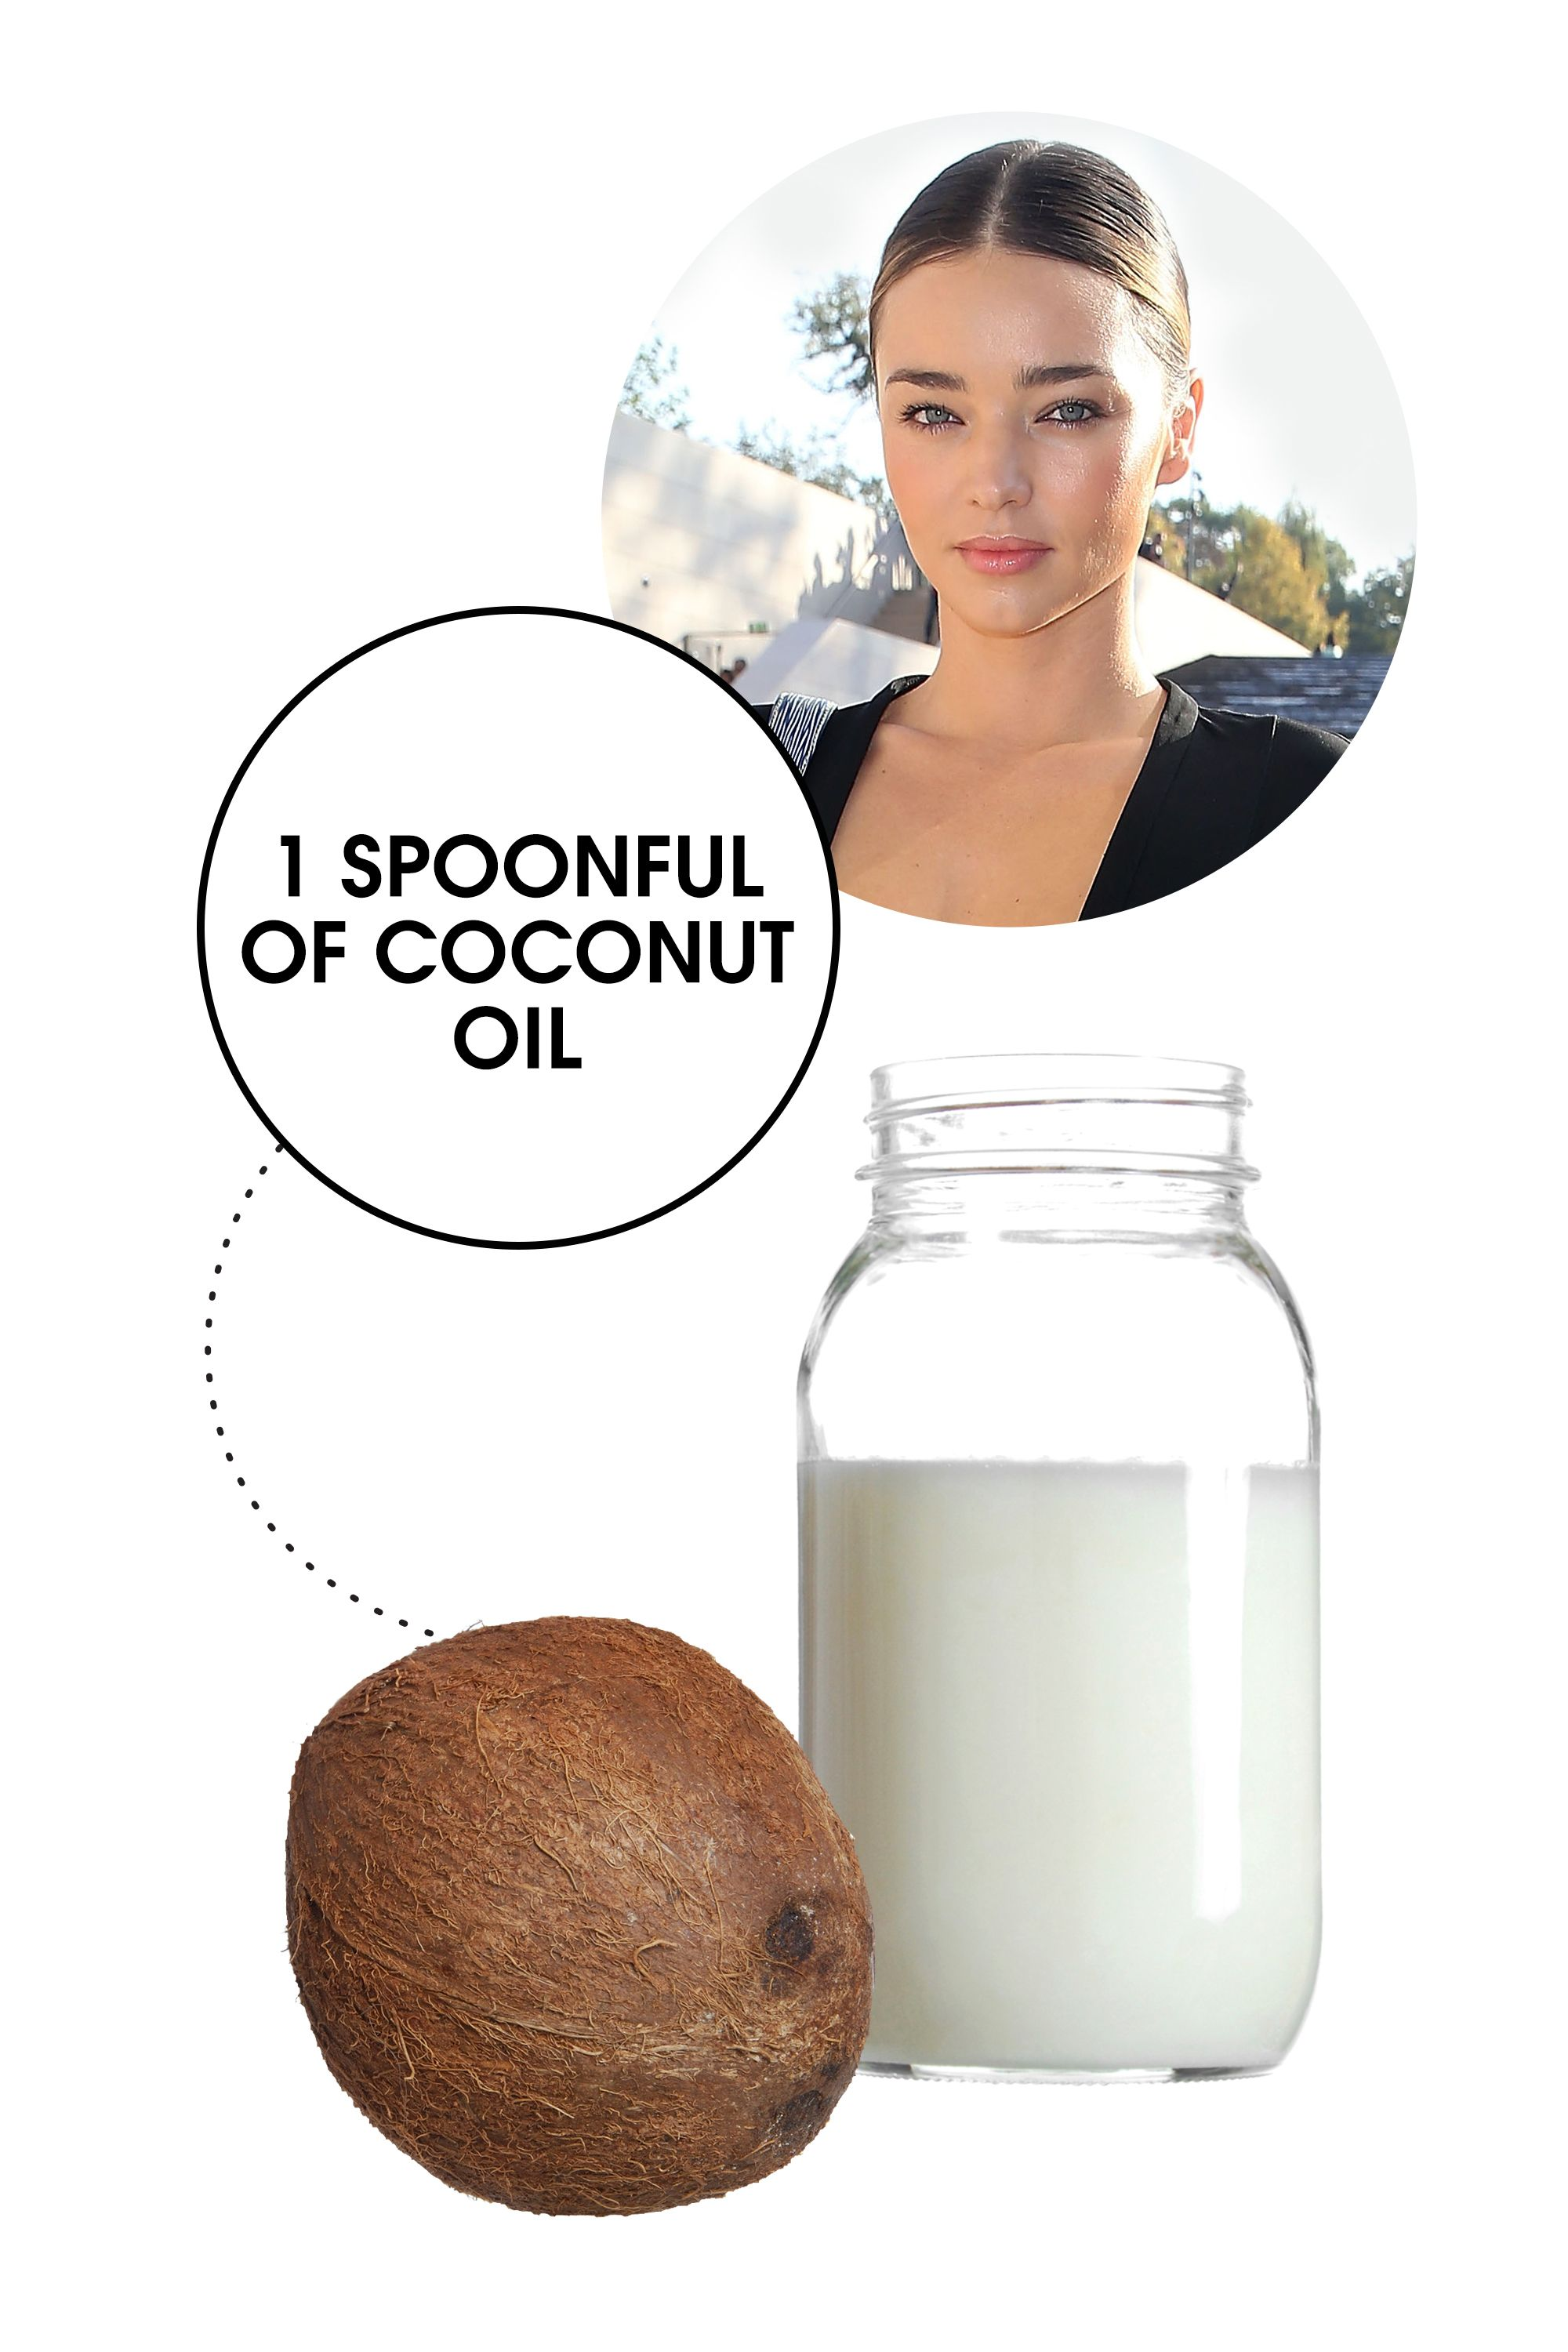 "The former Victoria's Secret Angel is hardly secretive about how she stays so fit, not that we're complaining. One of her top tips for beating bloat? A spoonful of unrefined coconut oil, consumed daily. Believe it or not, it's actually a practice many of our go-to nutrition experts <a target=""_blank"" href=""http://www.elle.com/beauty/health-fitness/advice/a27089/eat-this-today-look-and-feel-amazing-tomorrow/"">swear by to get digestion moving and flush out the system first thing in the morning</a>. (Try stirring a teaspoon into your coffee—it's <em>amazing</em>.)"